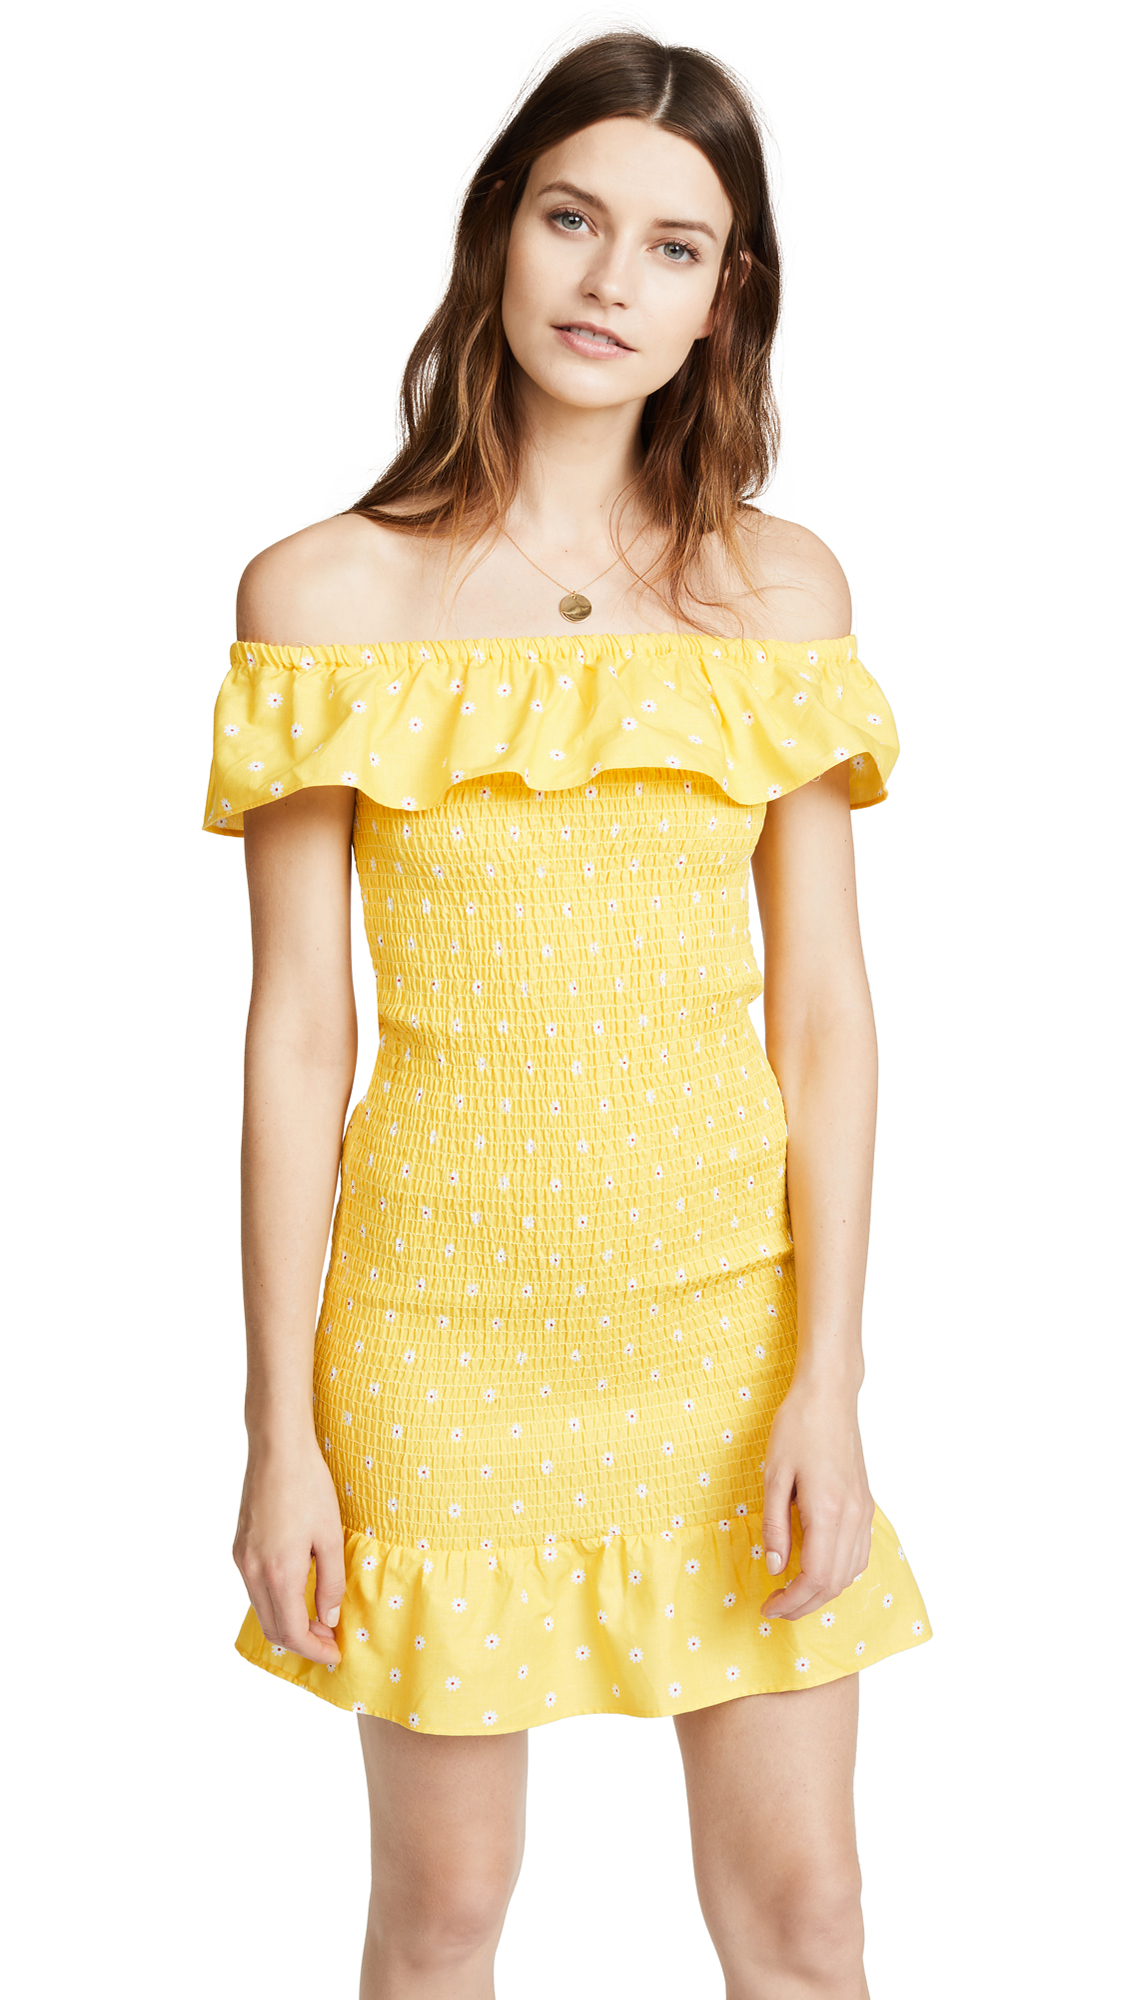 The Fifth Label Fiesta Dress In Yellow With White Daisy